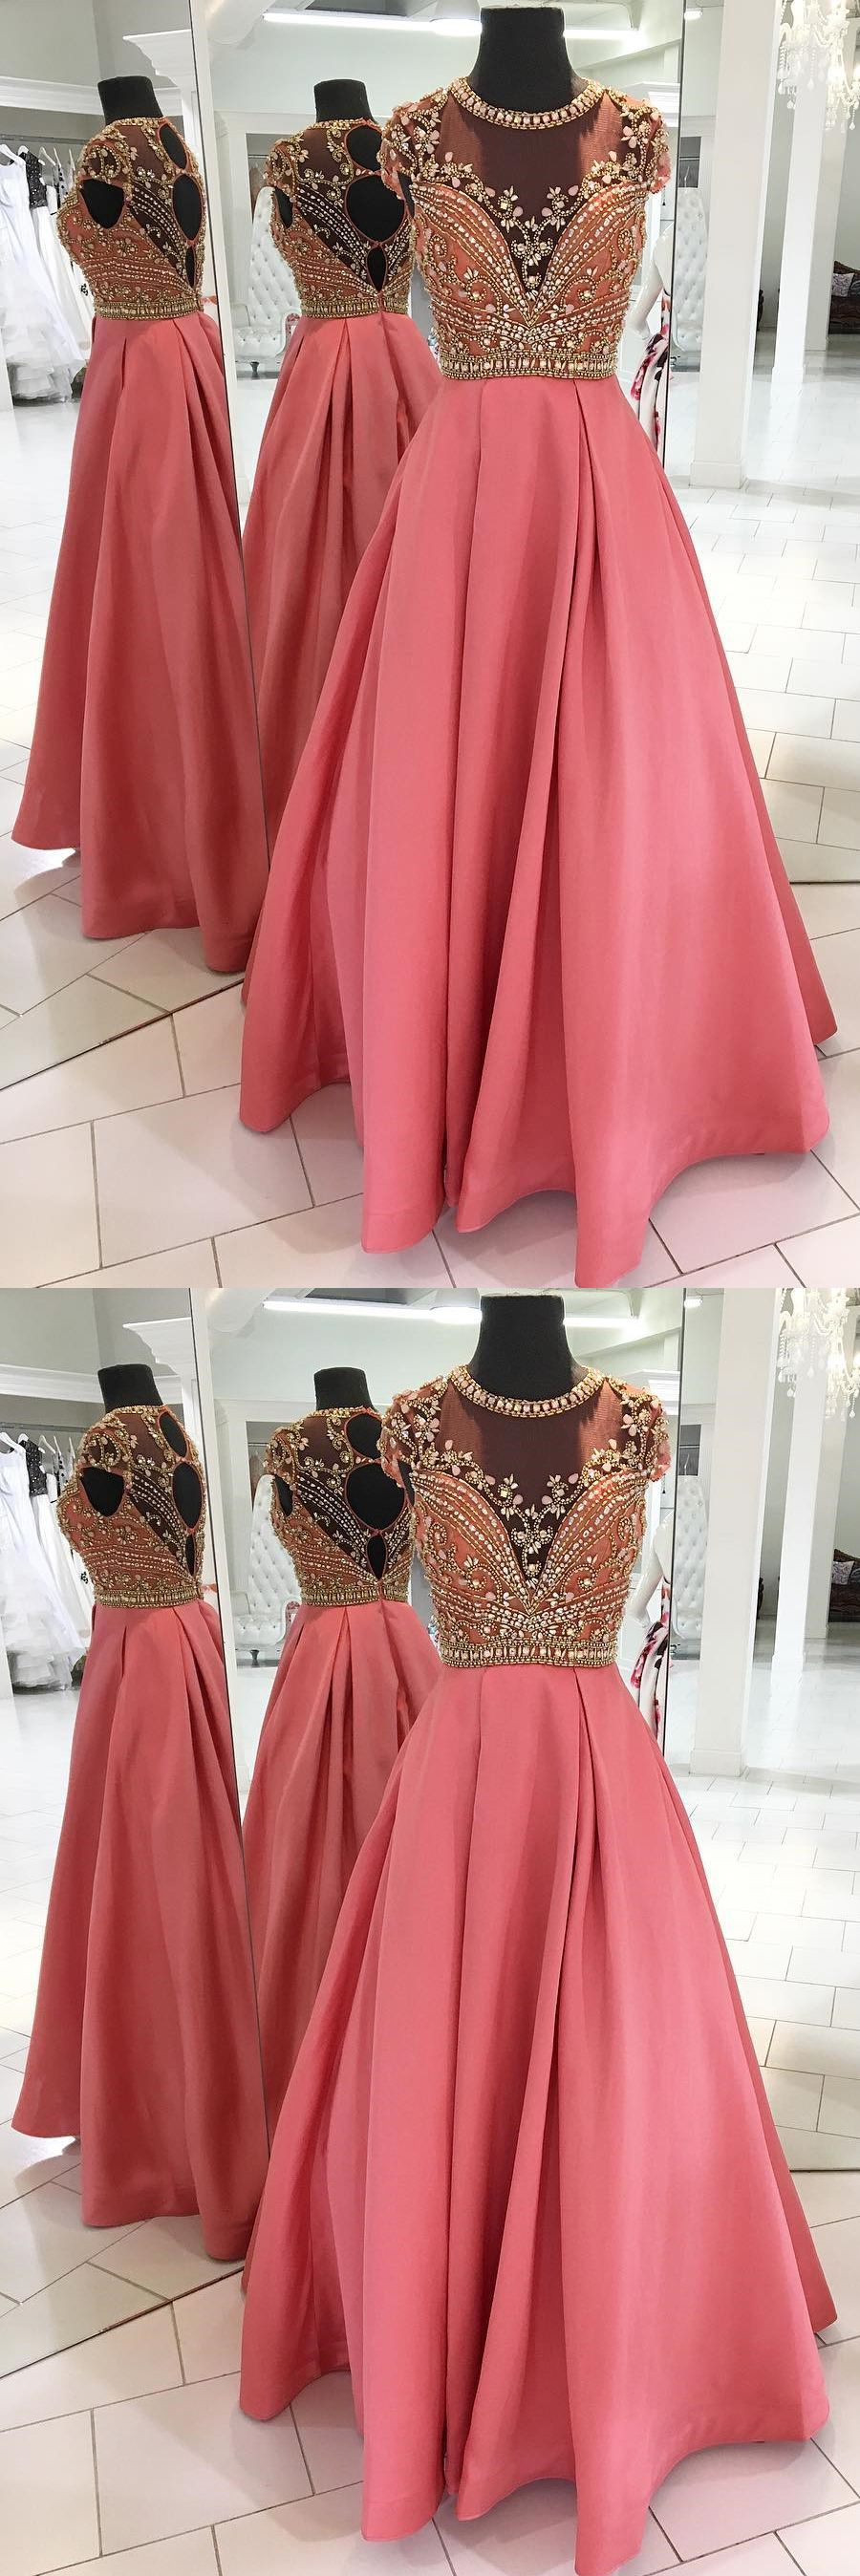 Charming aline jewel cap sleeves long prom dress with beading